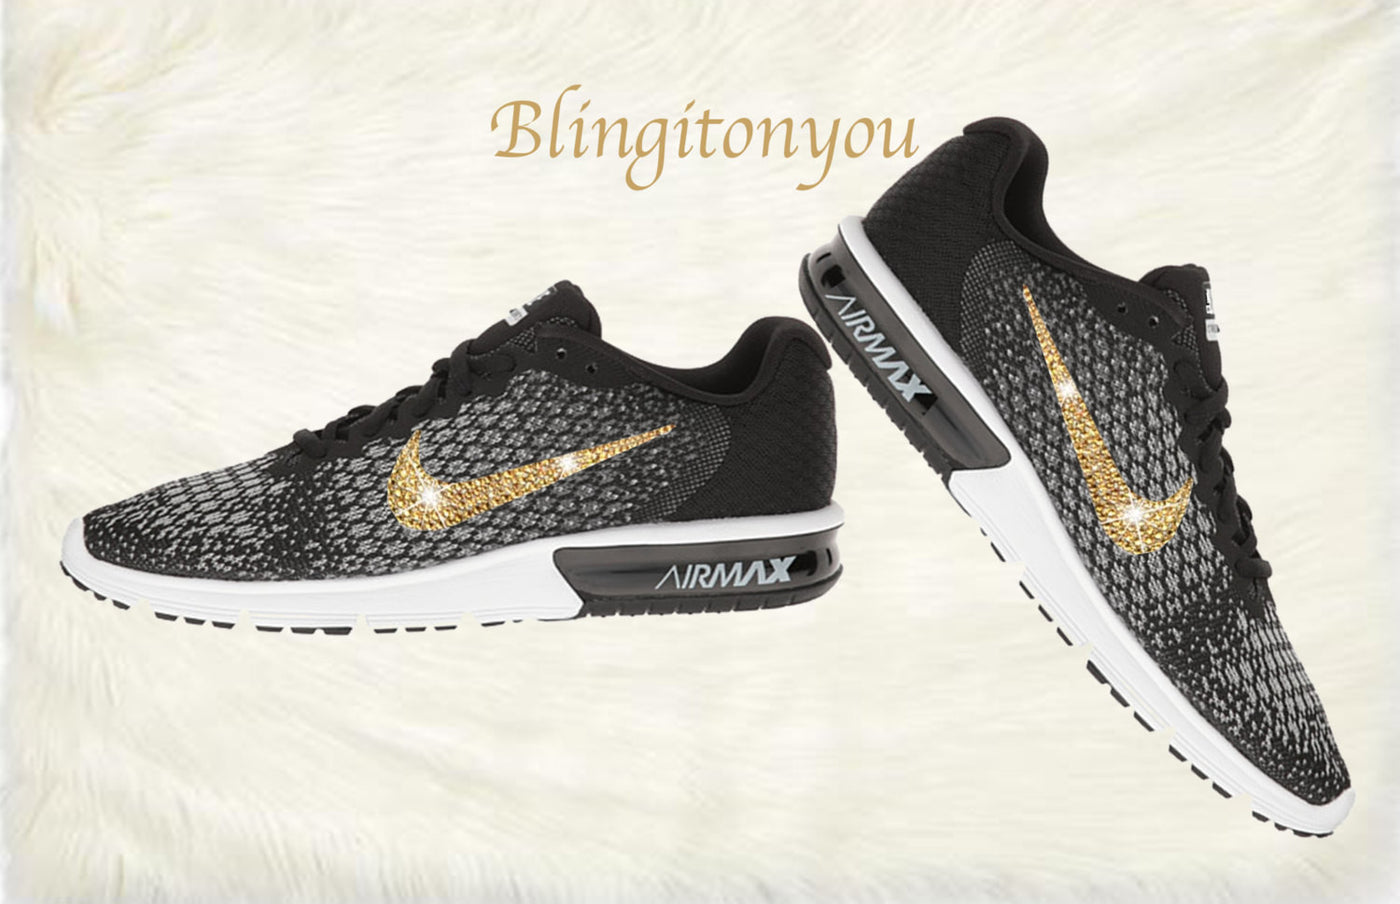 Swarovski Nike Air Max Sequent 2 Shoes Black Blinged Out With Gold Swarovski Crystals Nike Air Max Swarovski Nike Shoes